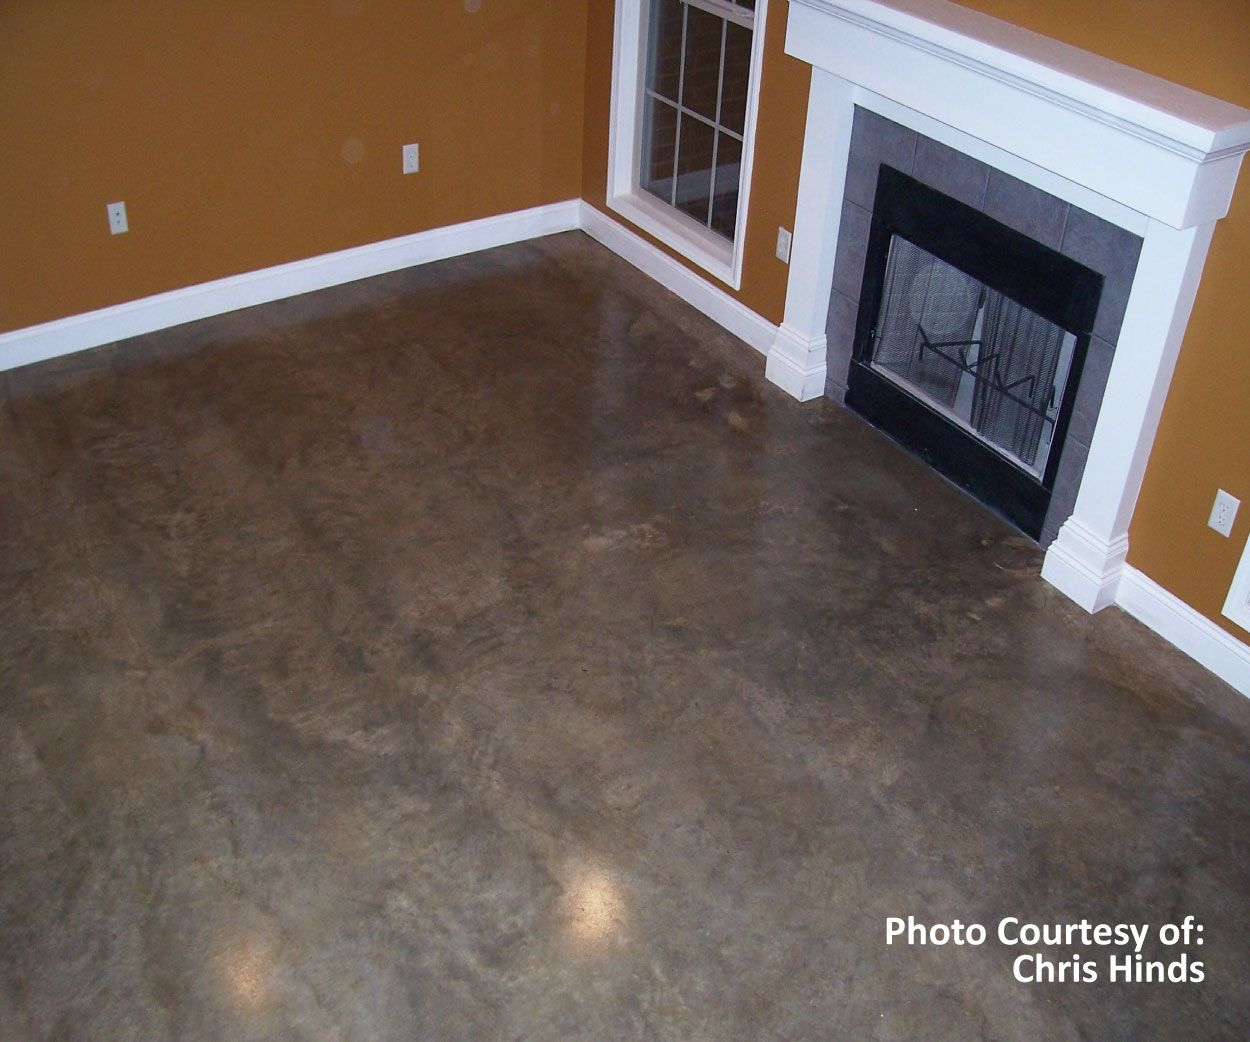 How To Carpet A Basement Floor: SoyCrete Concrete Stained Floor! Available At Www.greenpainter.com